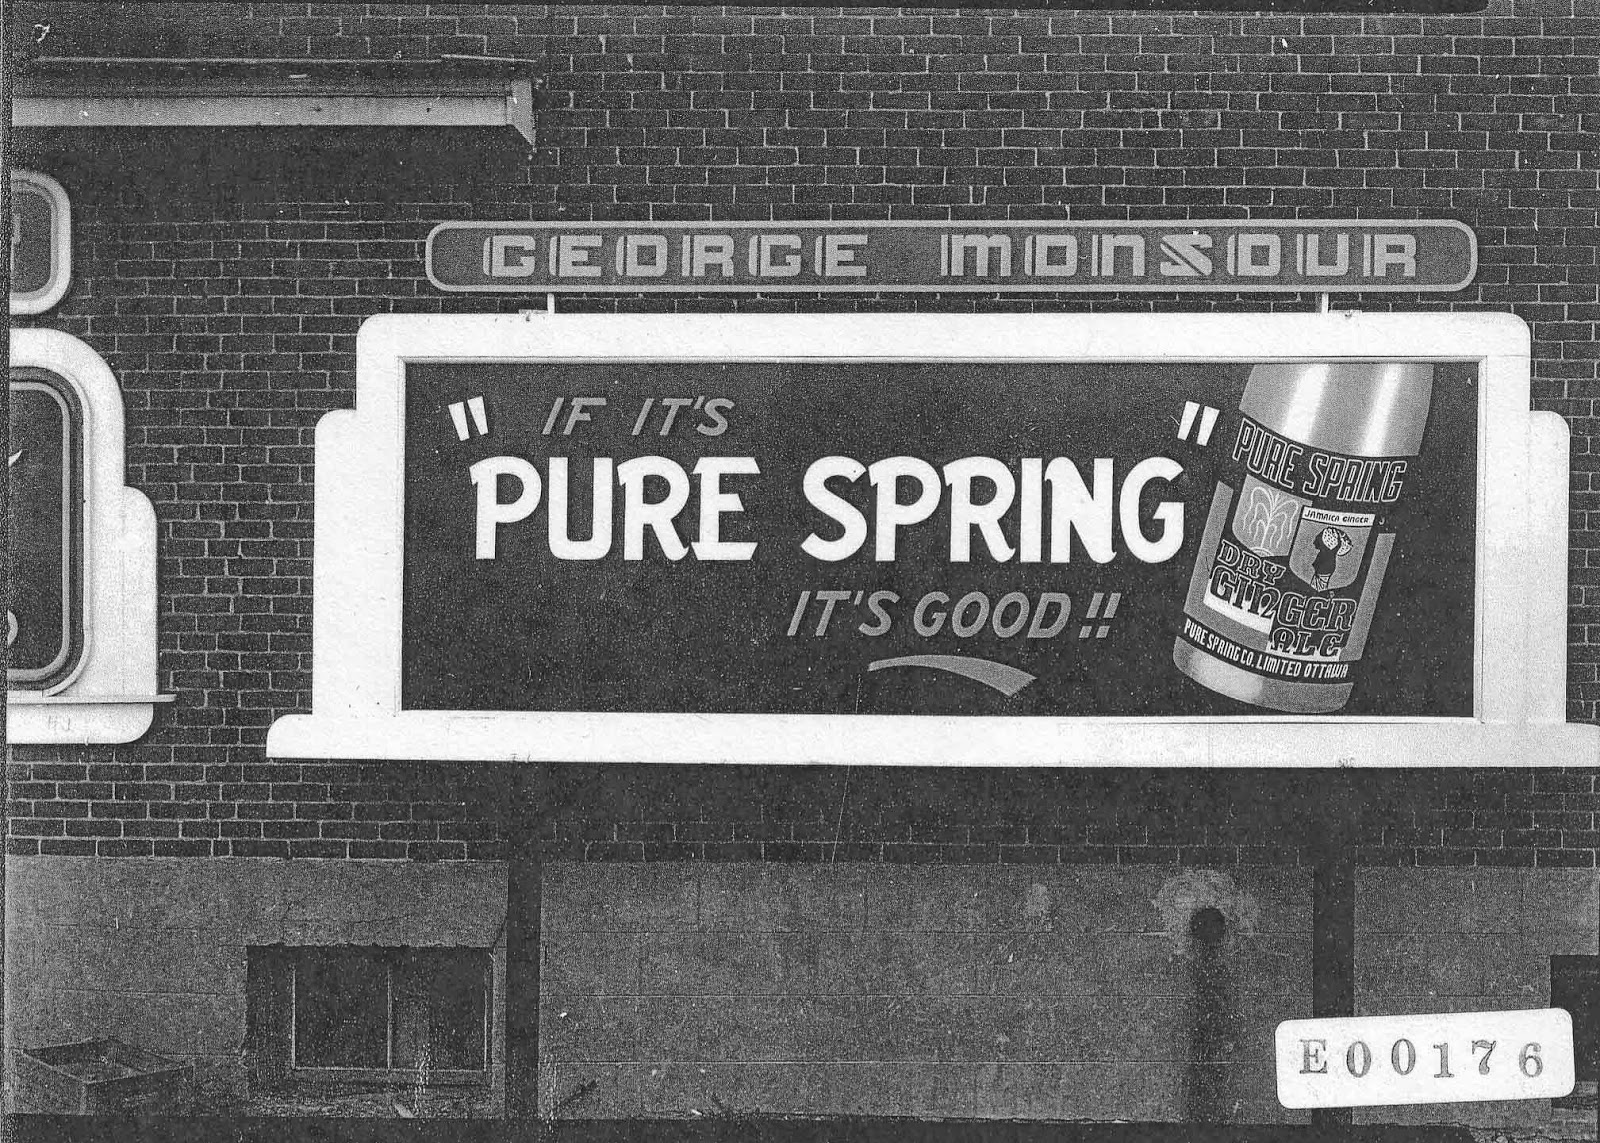 The Pure Spring billboard which was located on the side of the Westboro Confectionery - April 8 1946 (source: E00176 Sproul collection, City of Ottawa Archives) (this photo is just a placeholder - I am waiting for the colour original from the Archives)